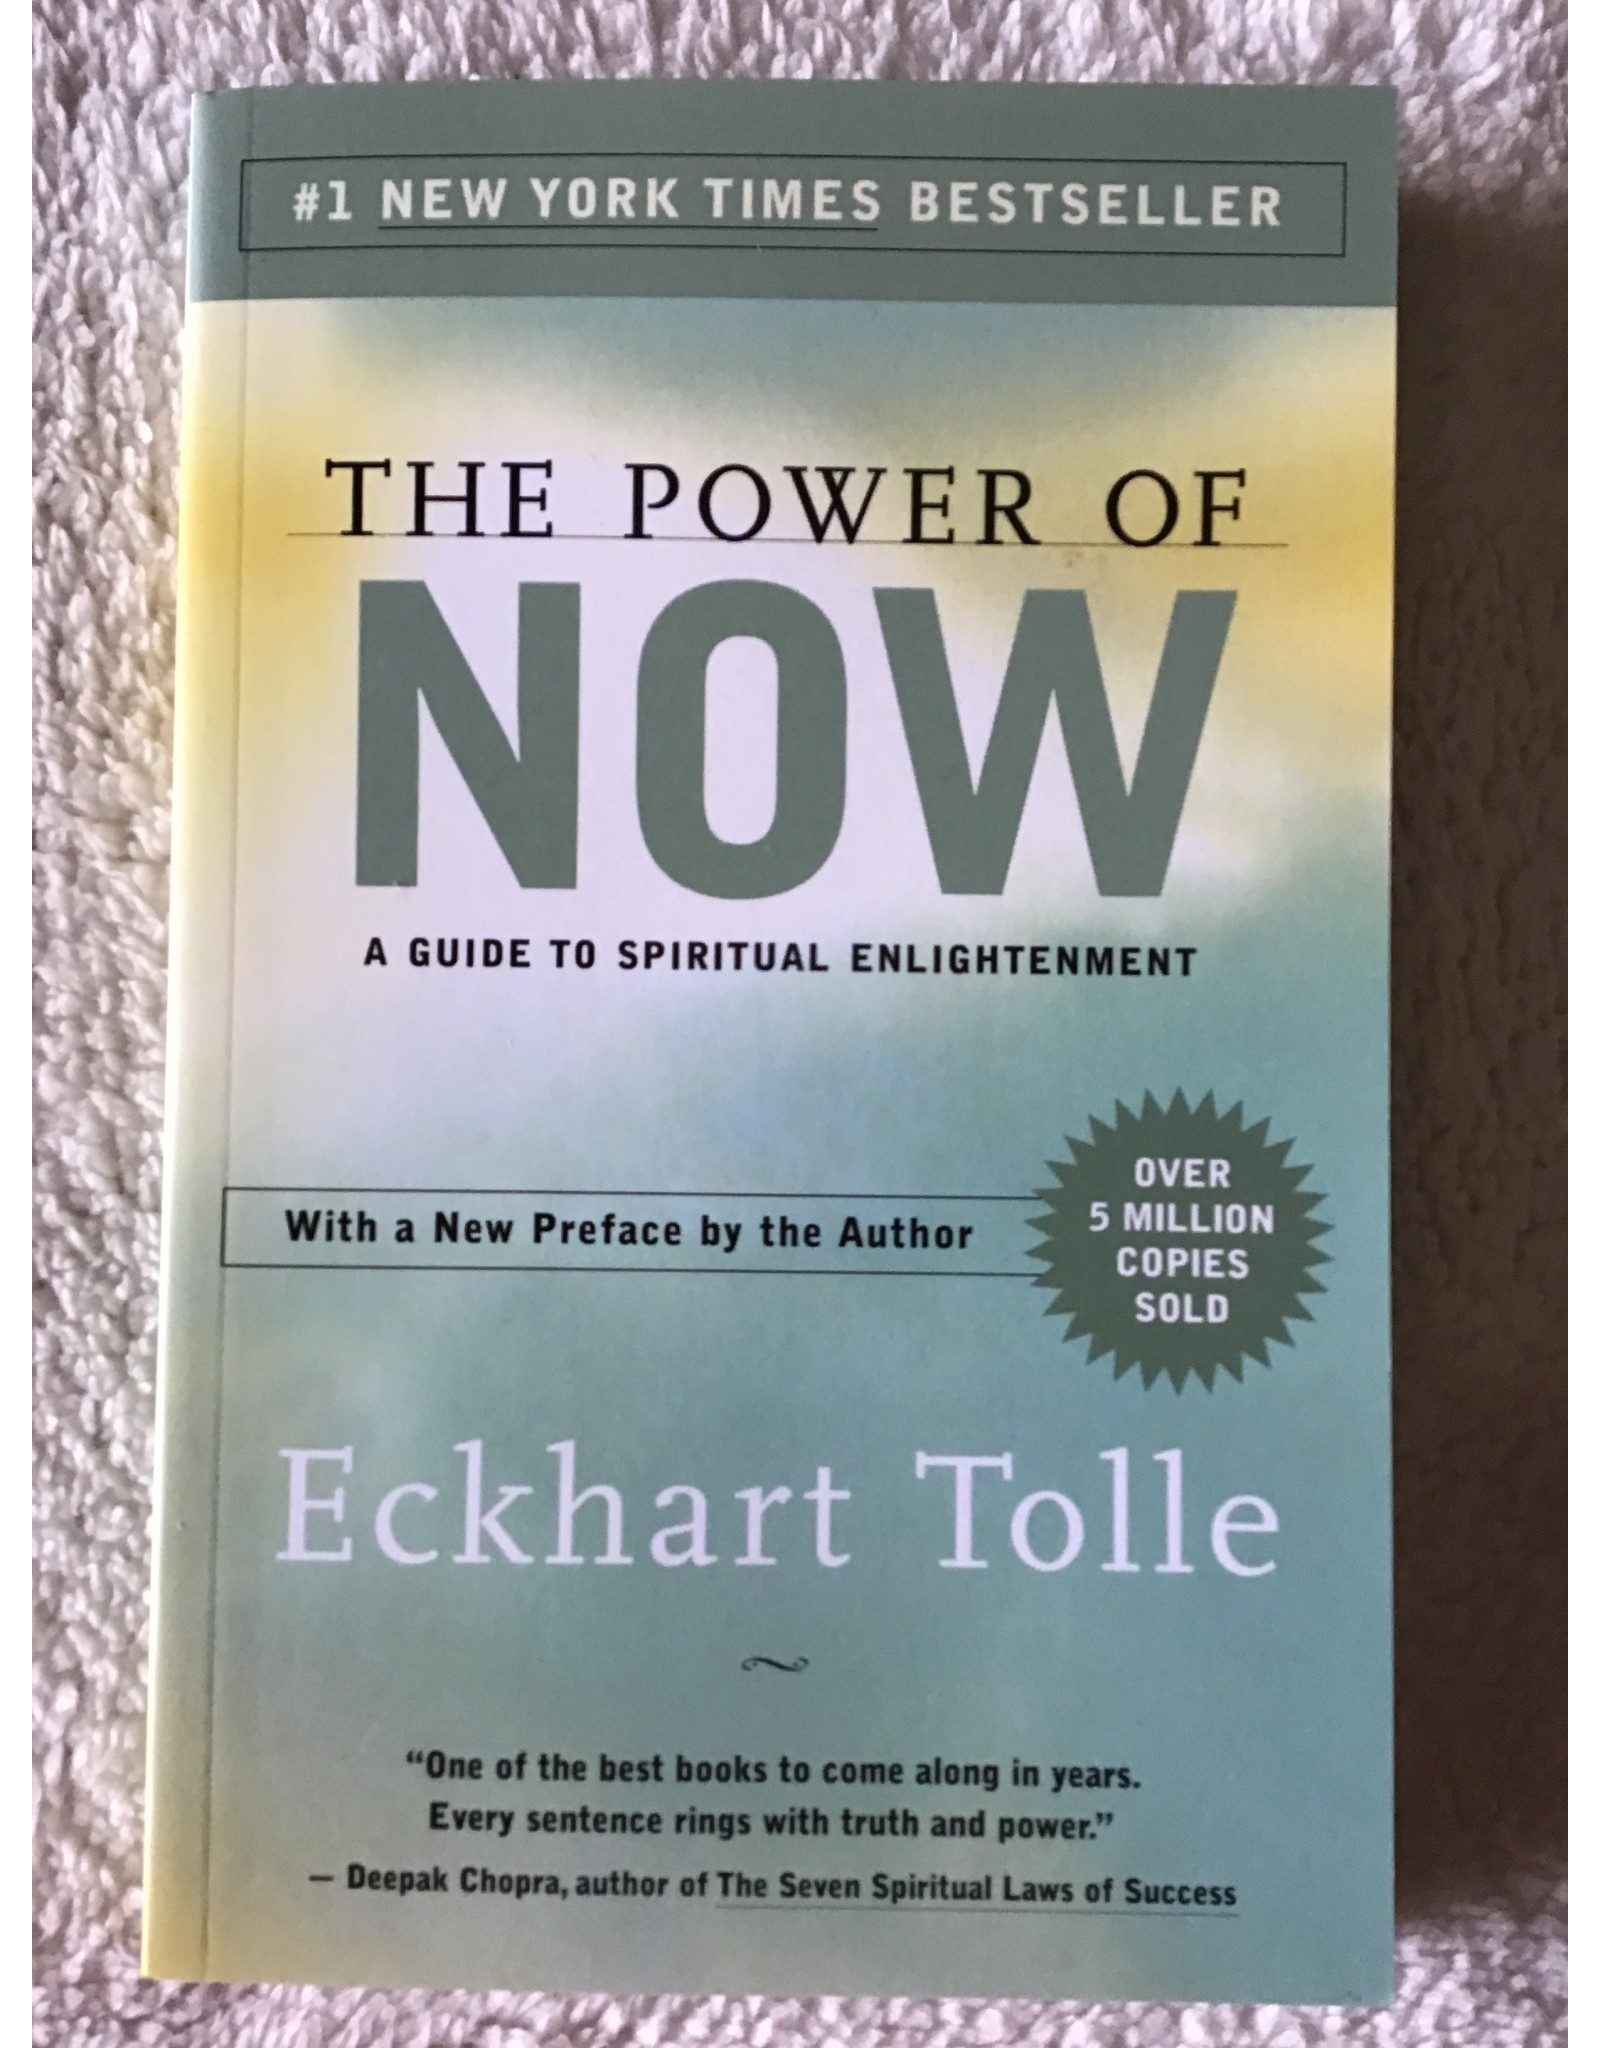 The Power of Now | A Guide to Spiritual Enlightenment